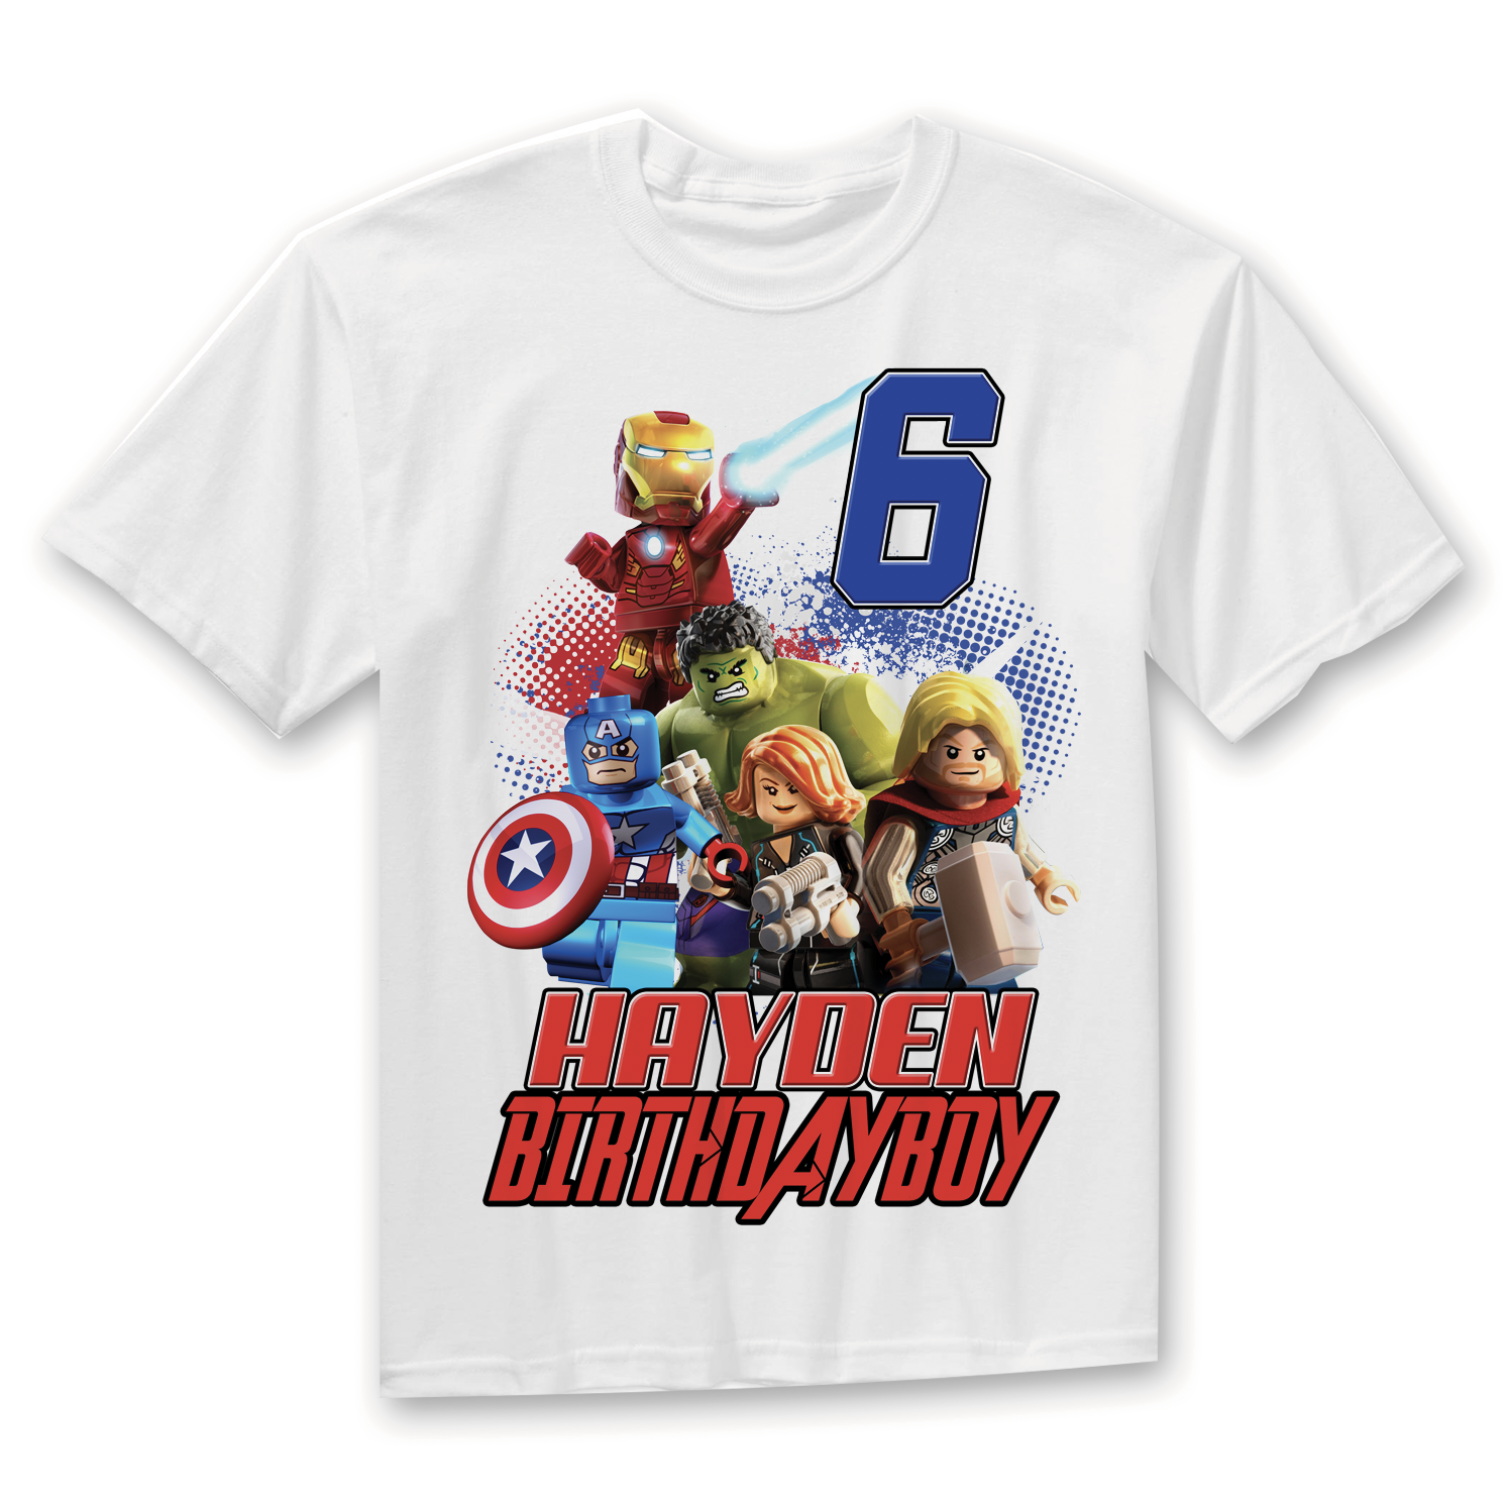 be1e42a6 Avengers birthday shirt - Avengers t shirt for boy birthday party – PARTY  STYLE STORE